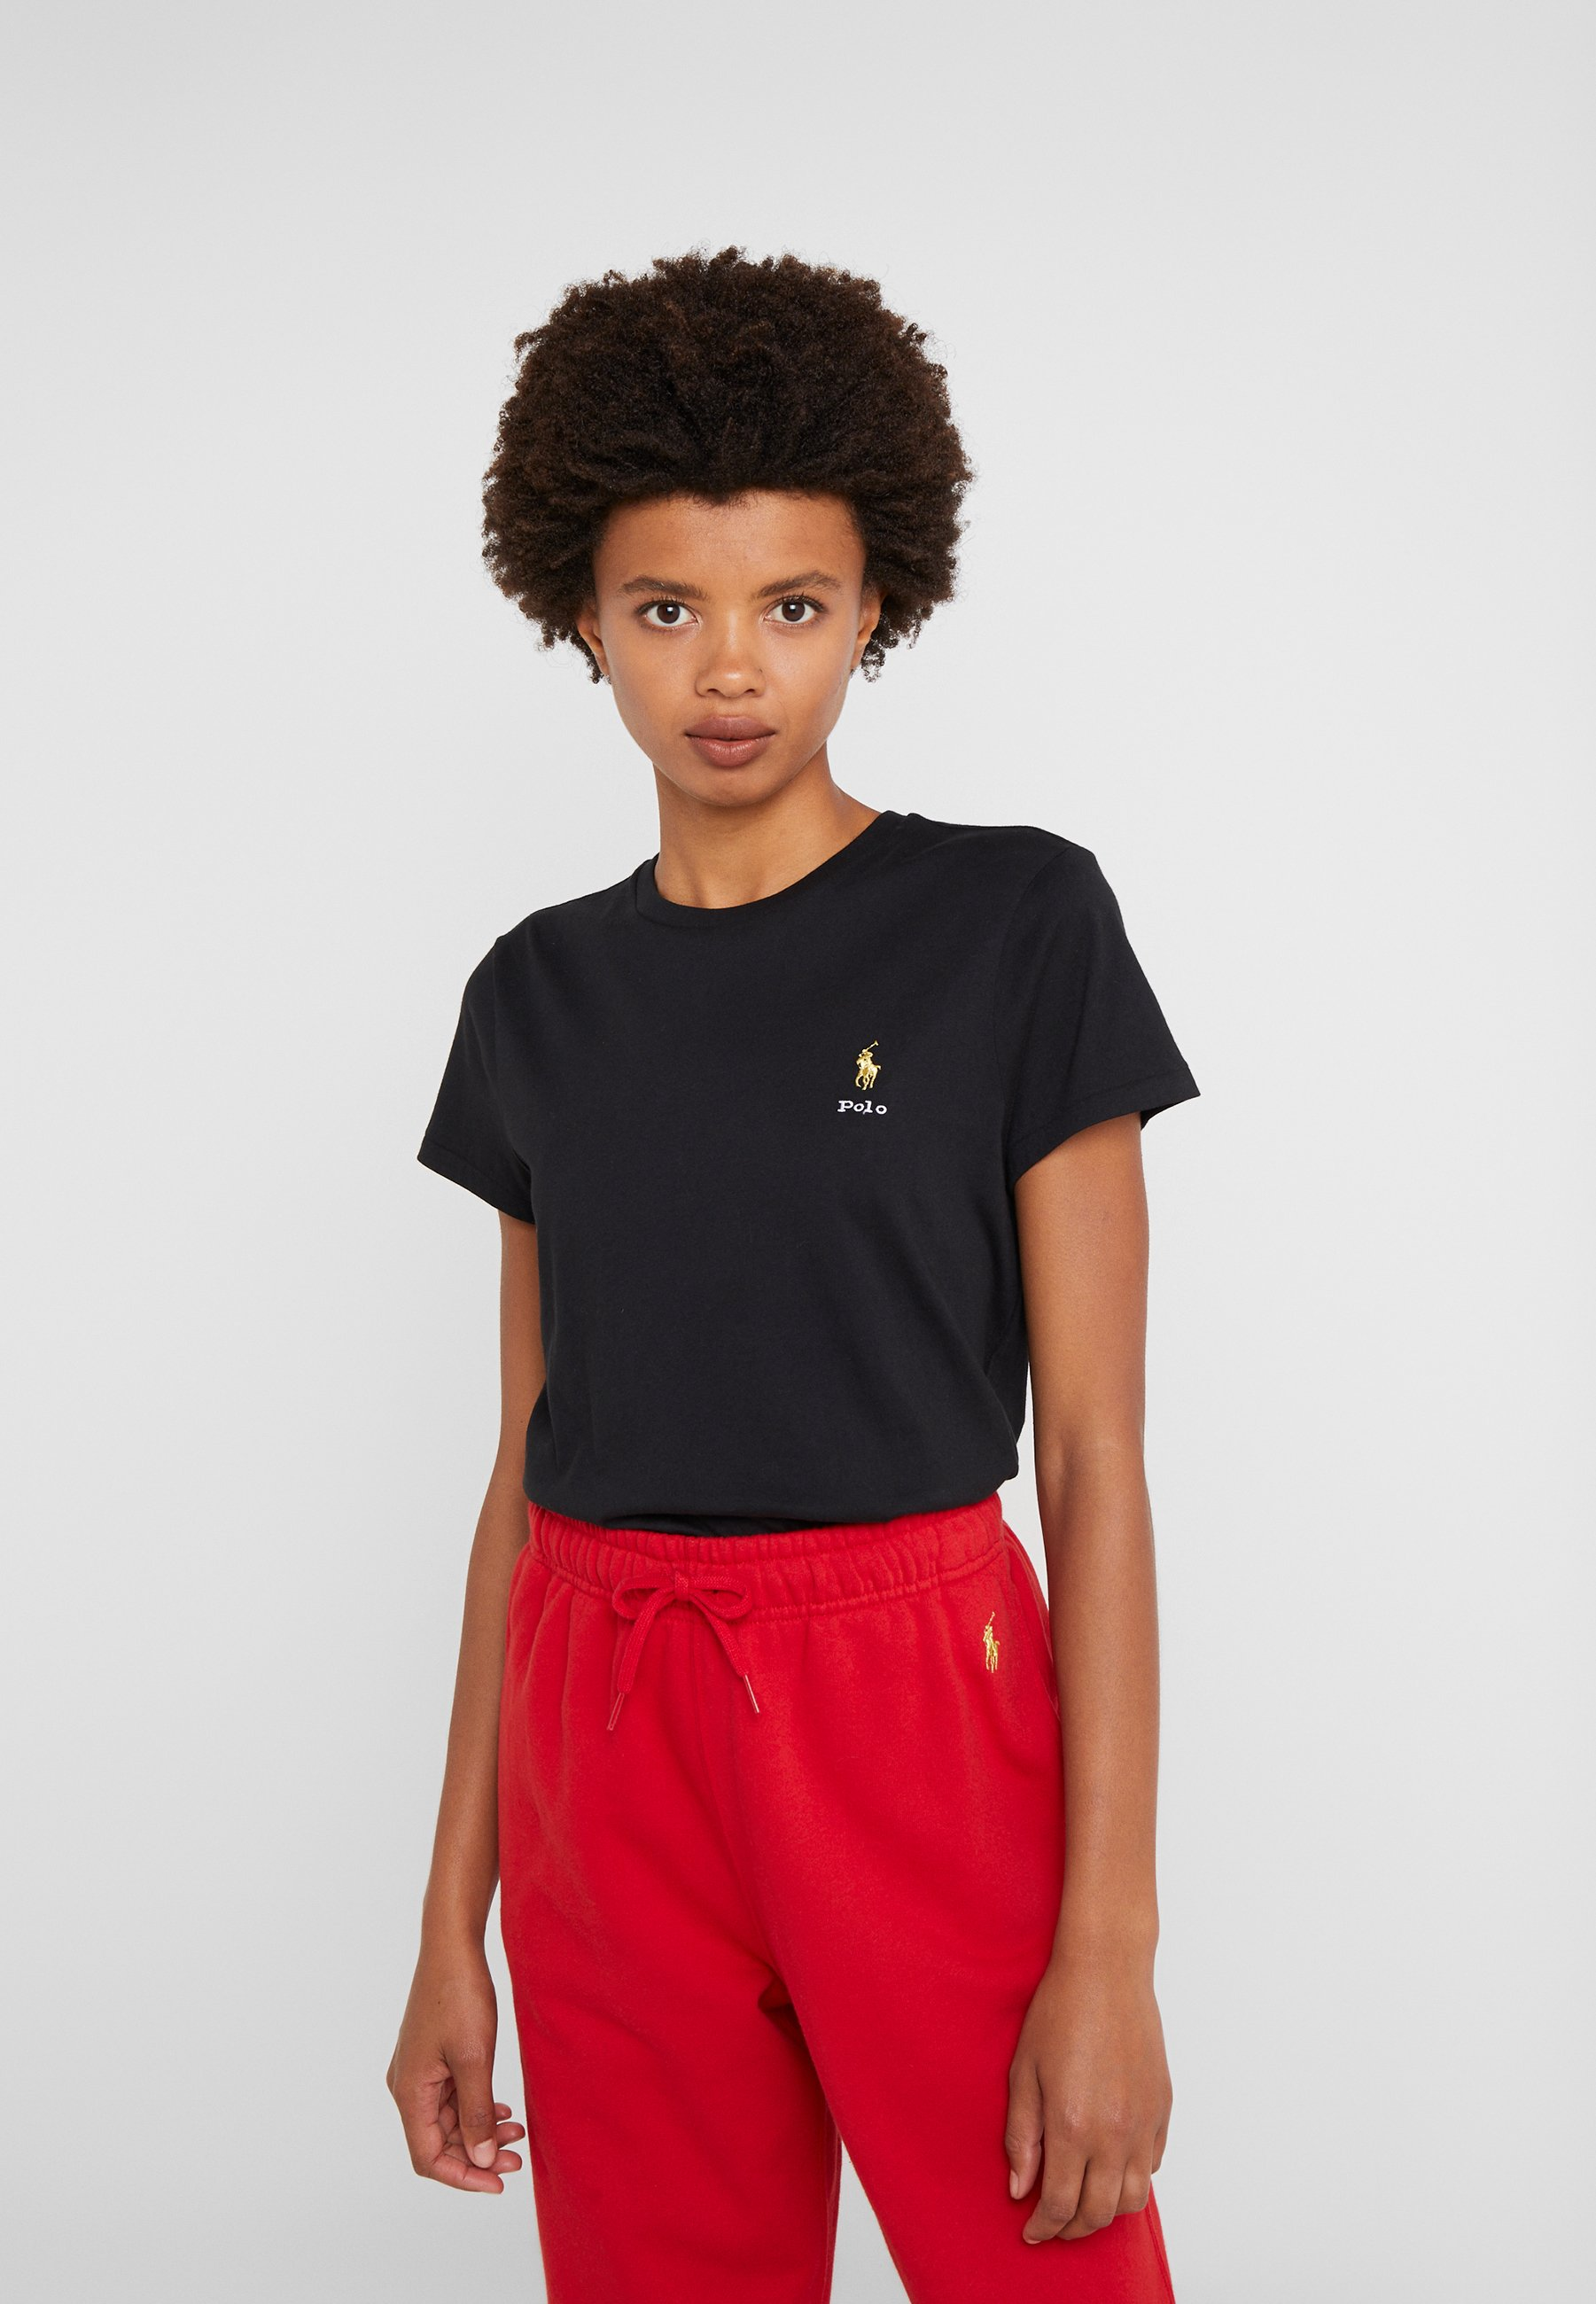 Polo Ralph Lauren T-shirts - black